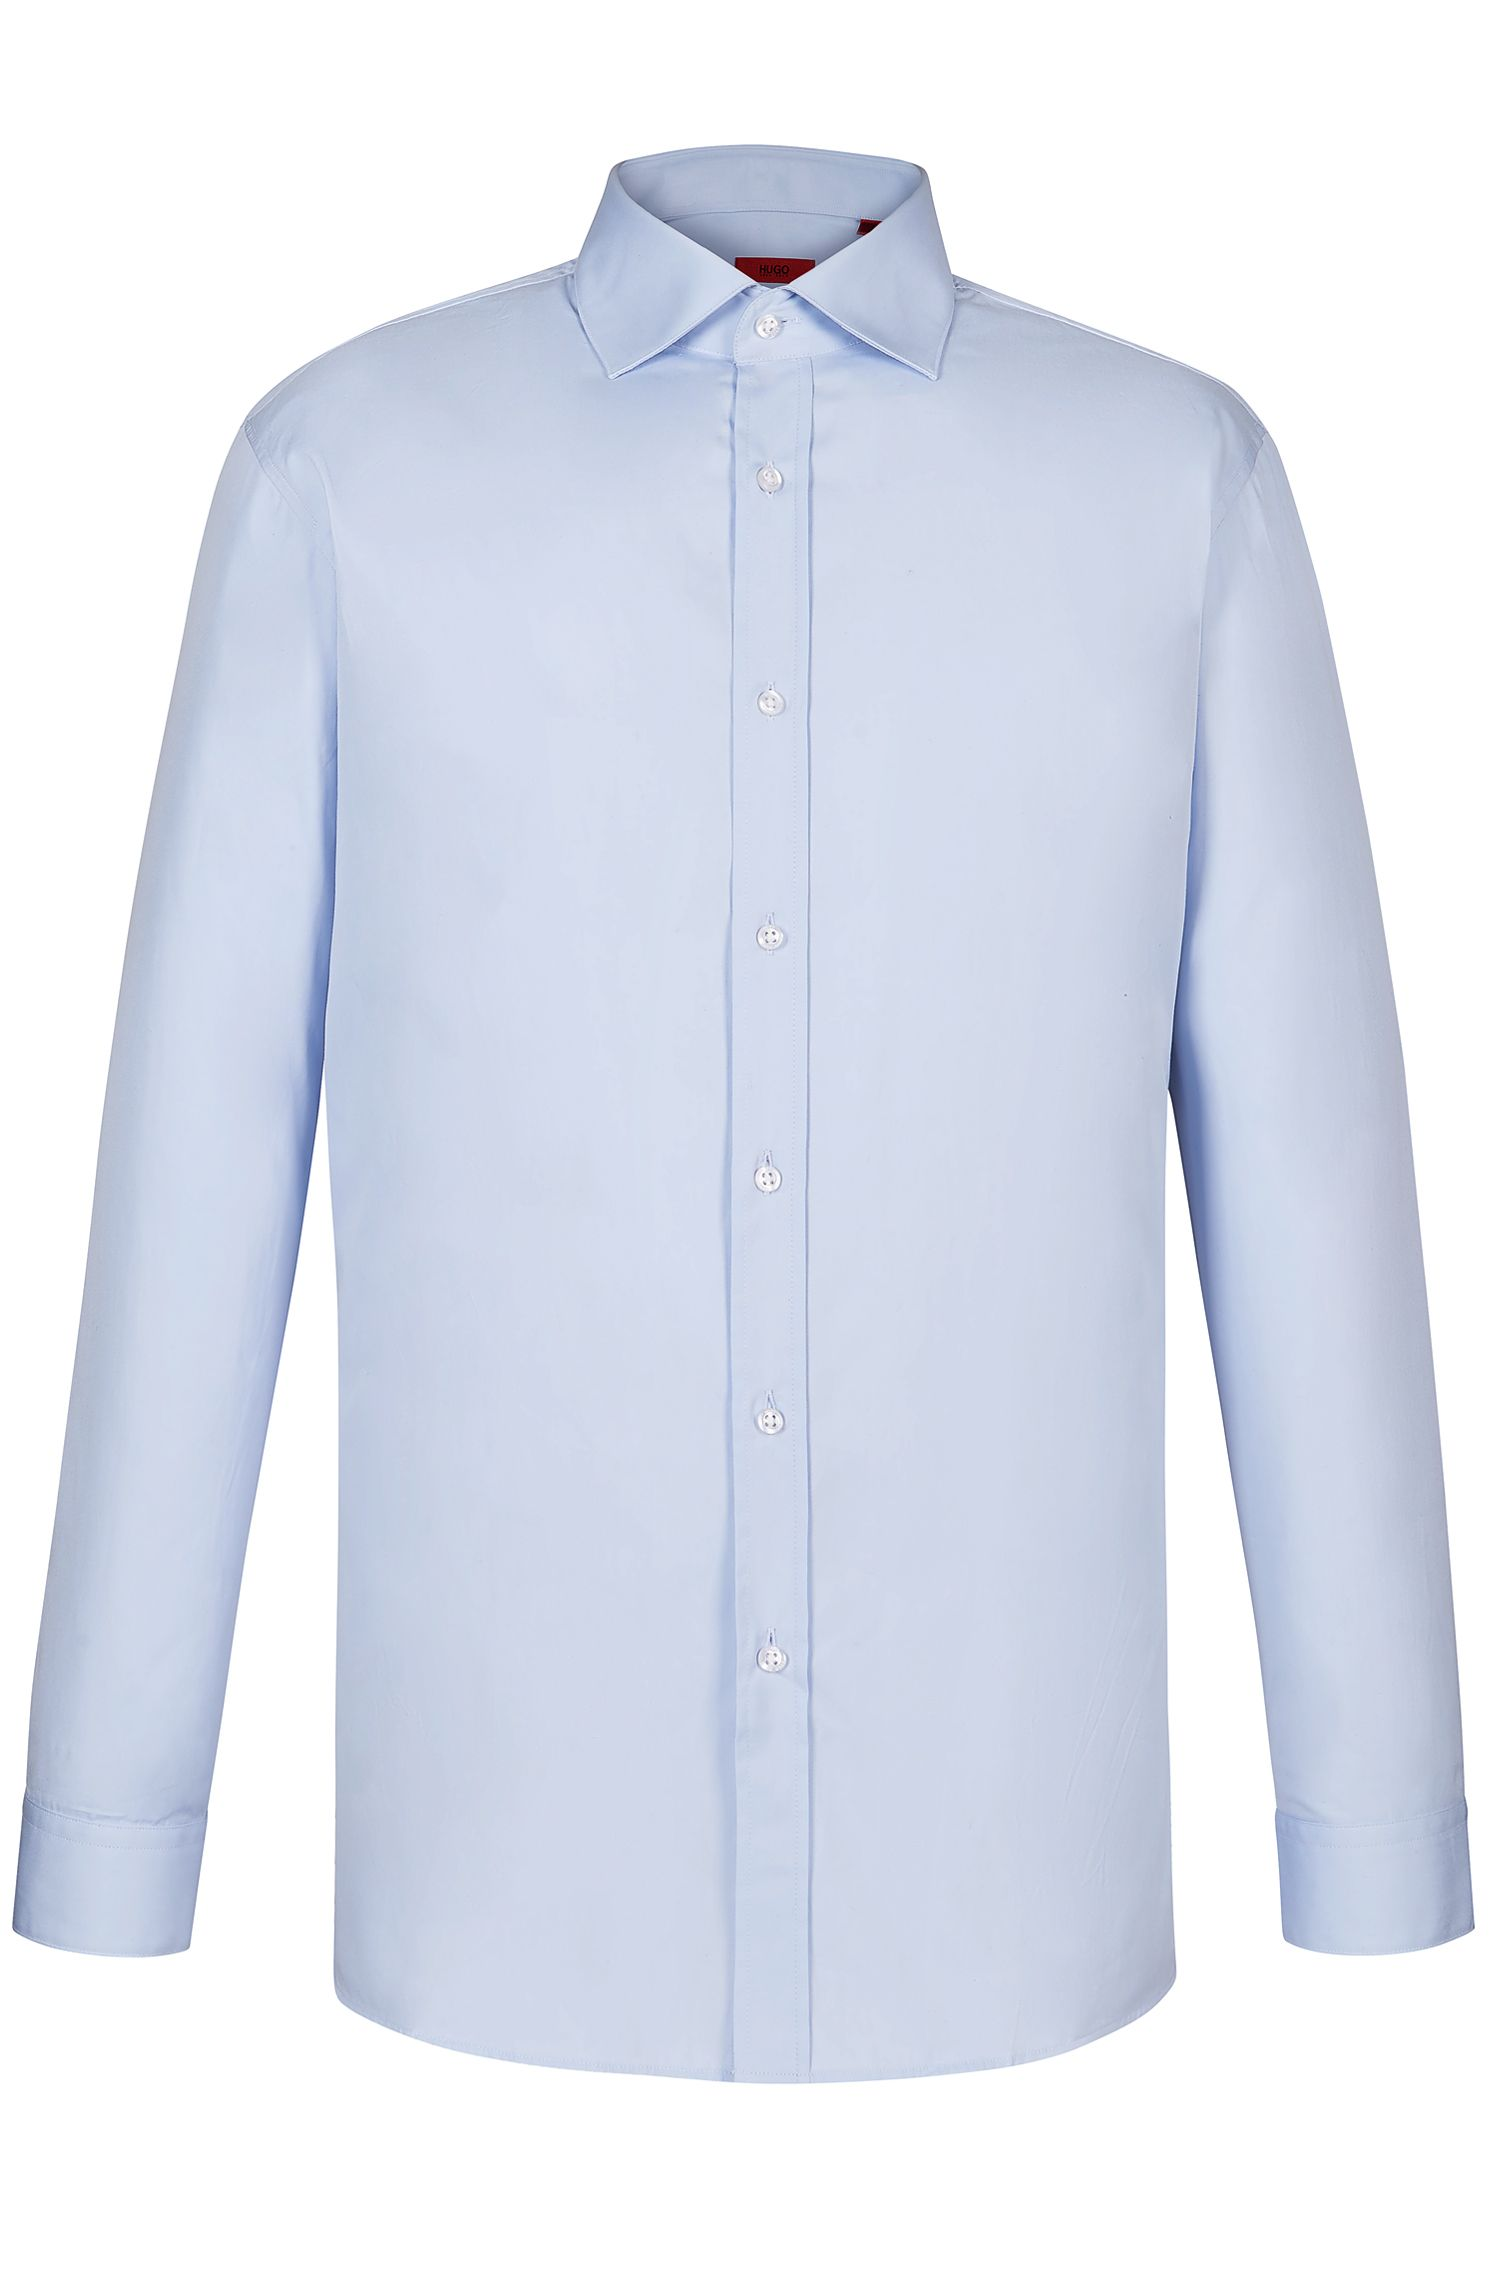 'ENDERSONX' | Modern Fit, Point Collar Stretch Cotton Dress Shirt